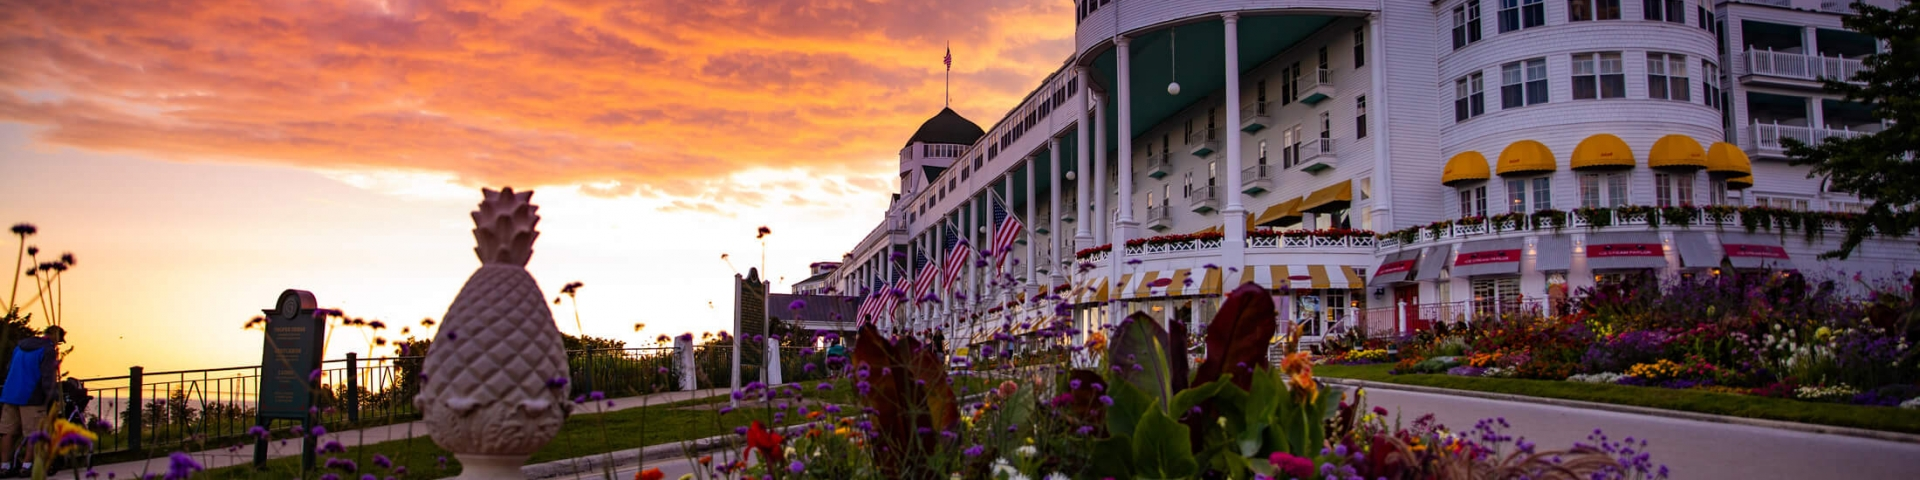 The Island Hotel Halloween Party 2020 Halloween Vacation Weekend Package | Grand Hotel, Mackinac Is.